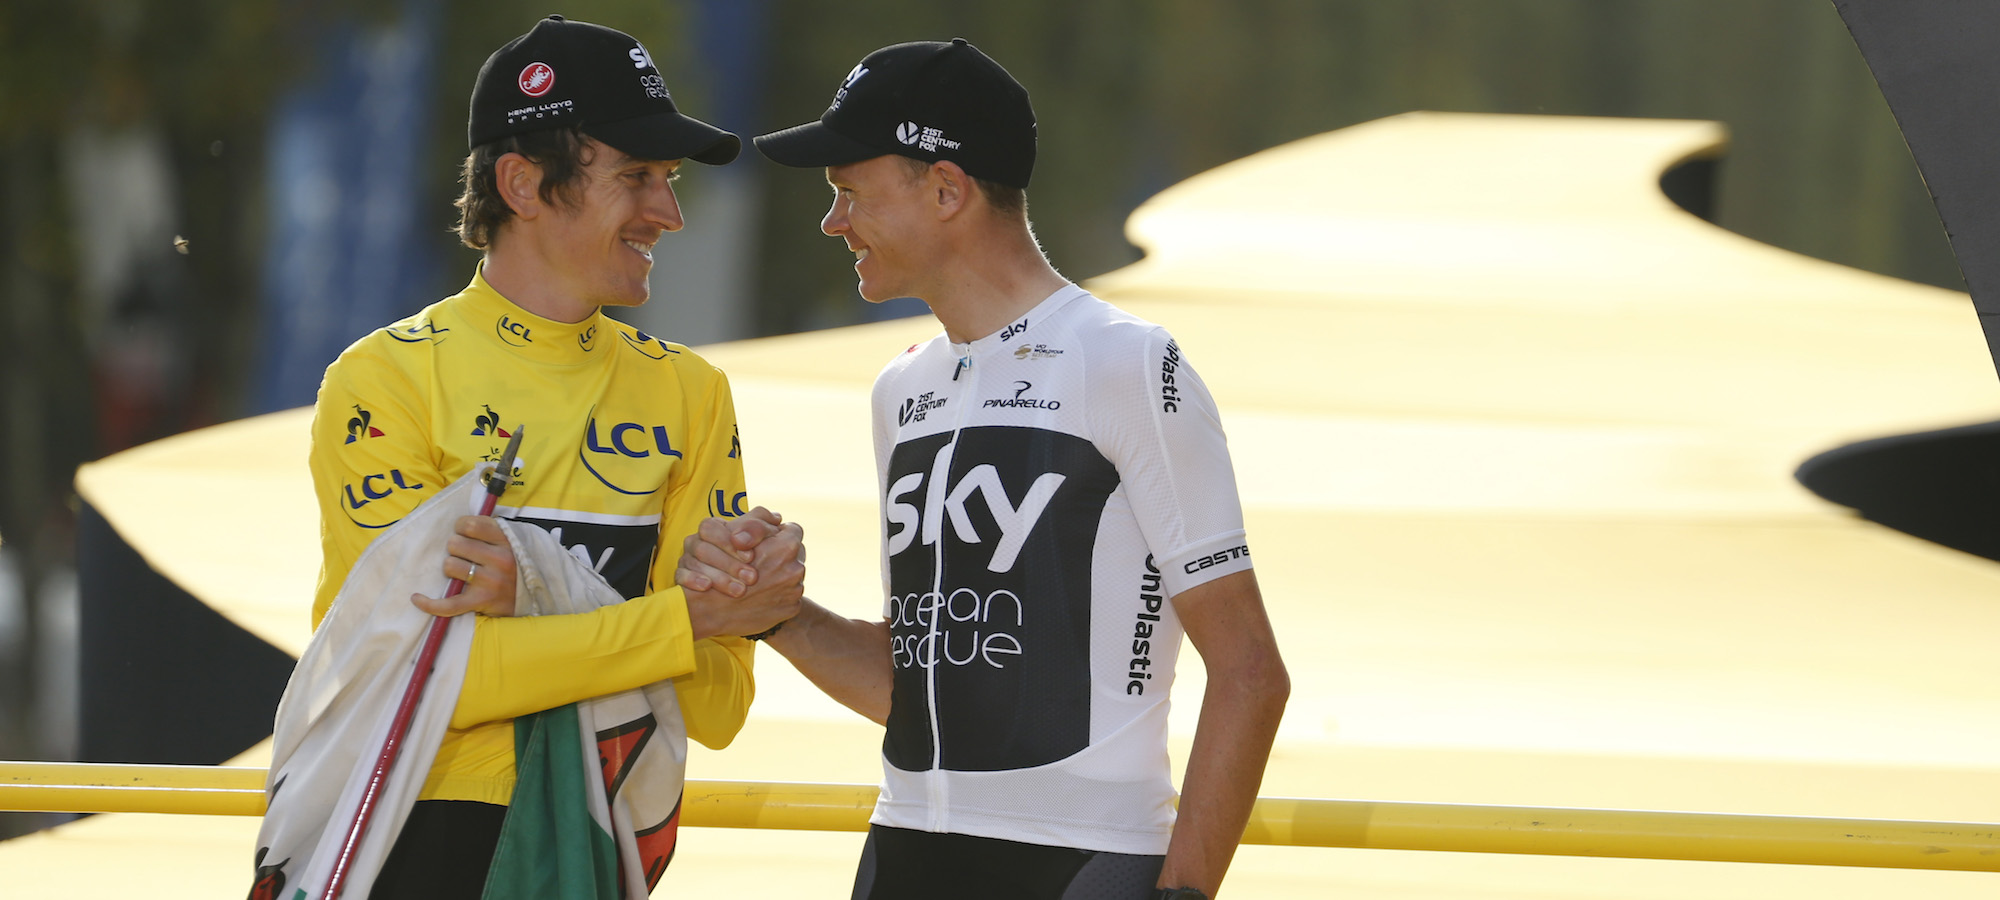 Geraint Thomas Reveals Tension With Team Sky Over Chris Froome